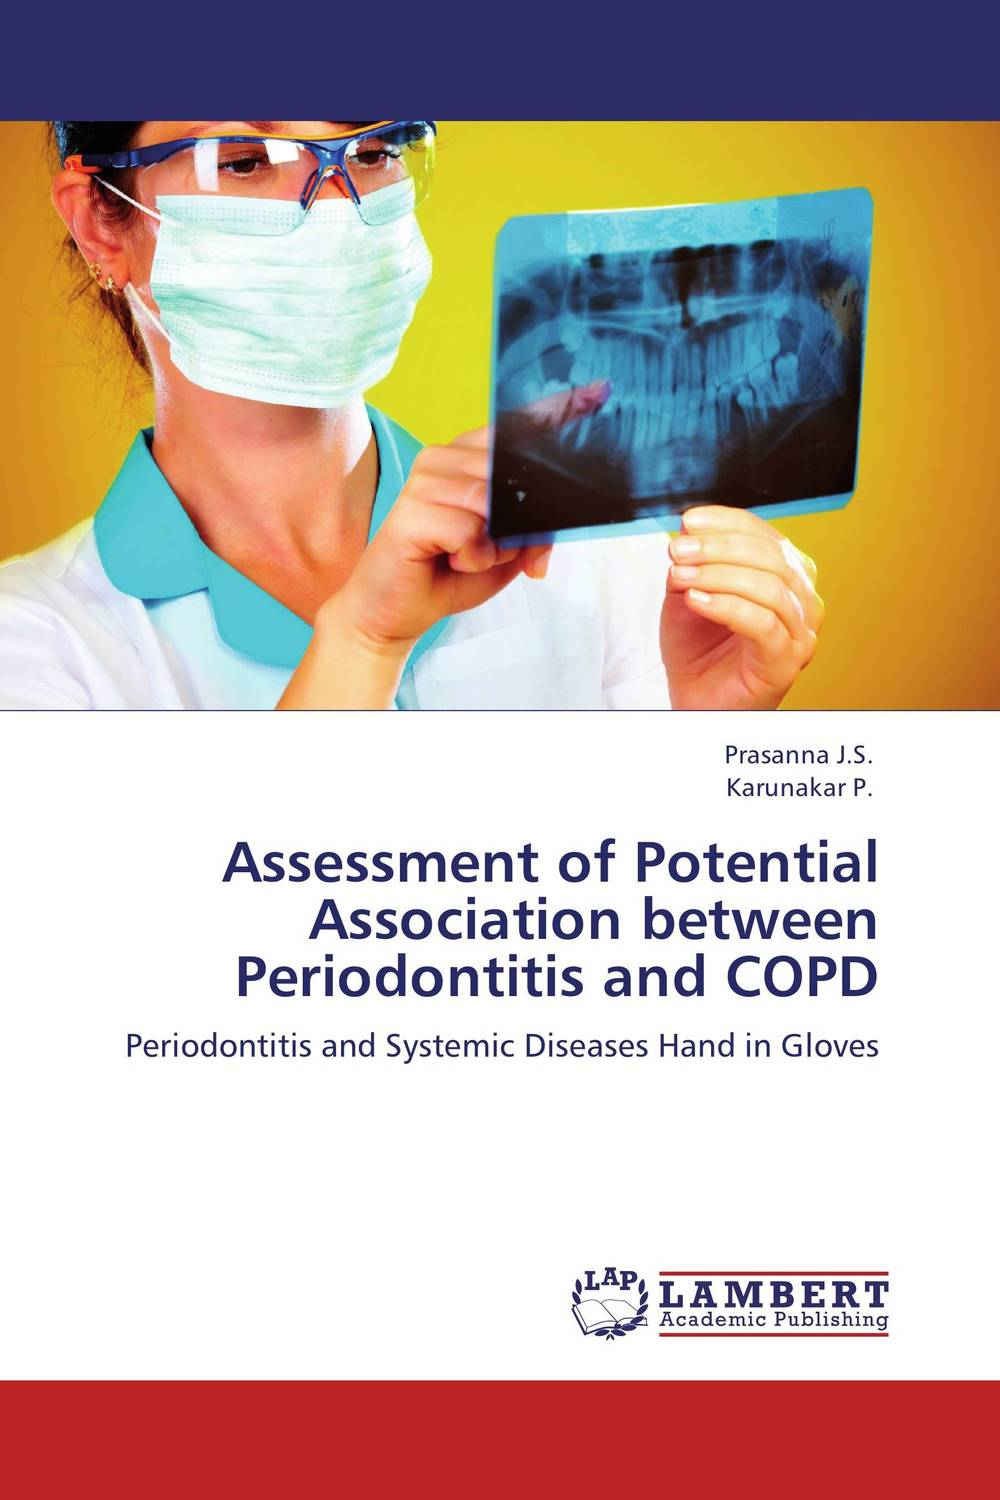 Assessment of Potential Association between Periodontitis and COPD assessment of oral pre cancer and cancerous lesions in gujarat state